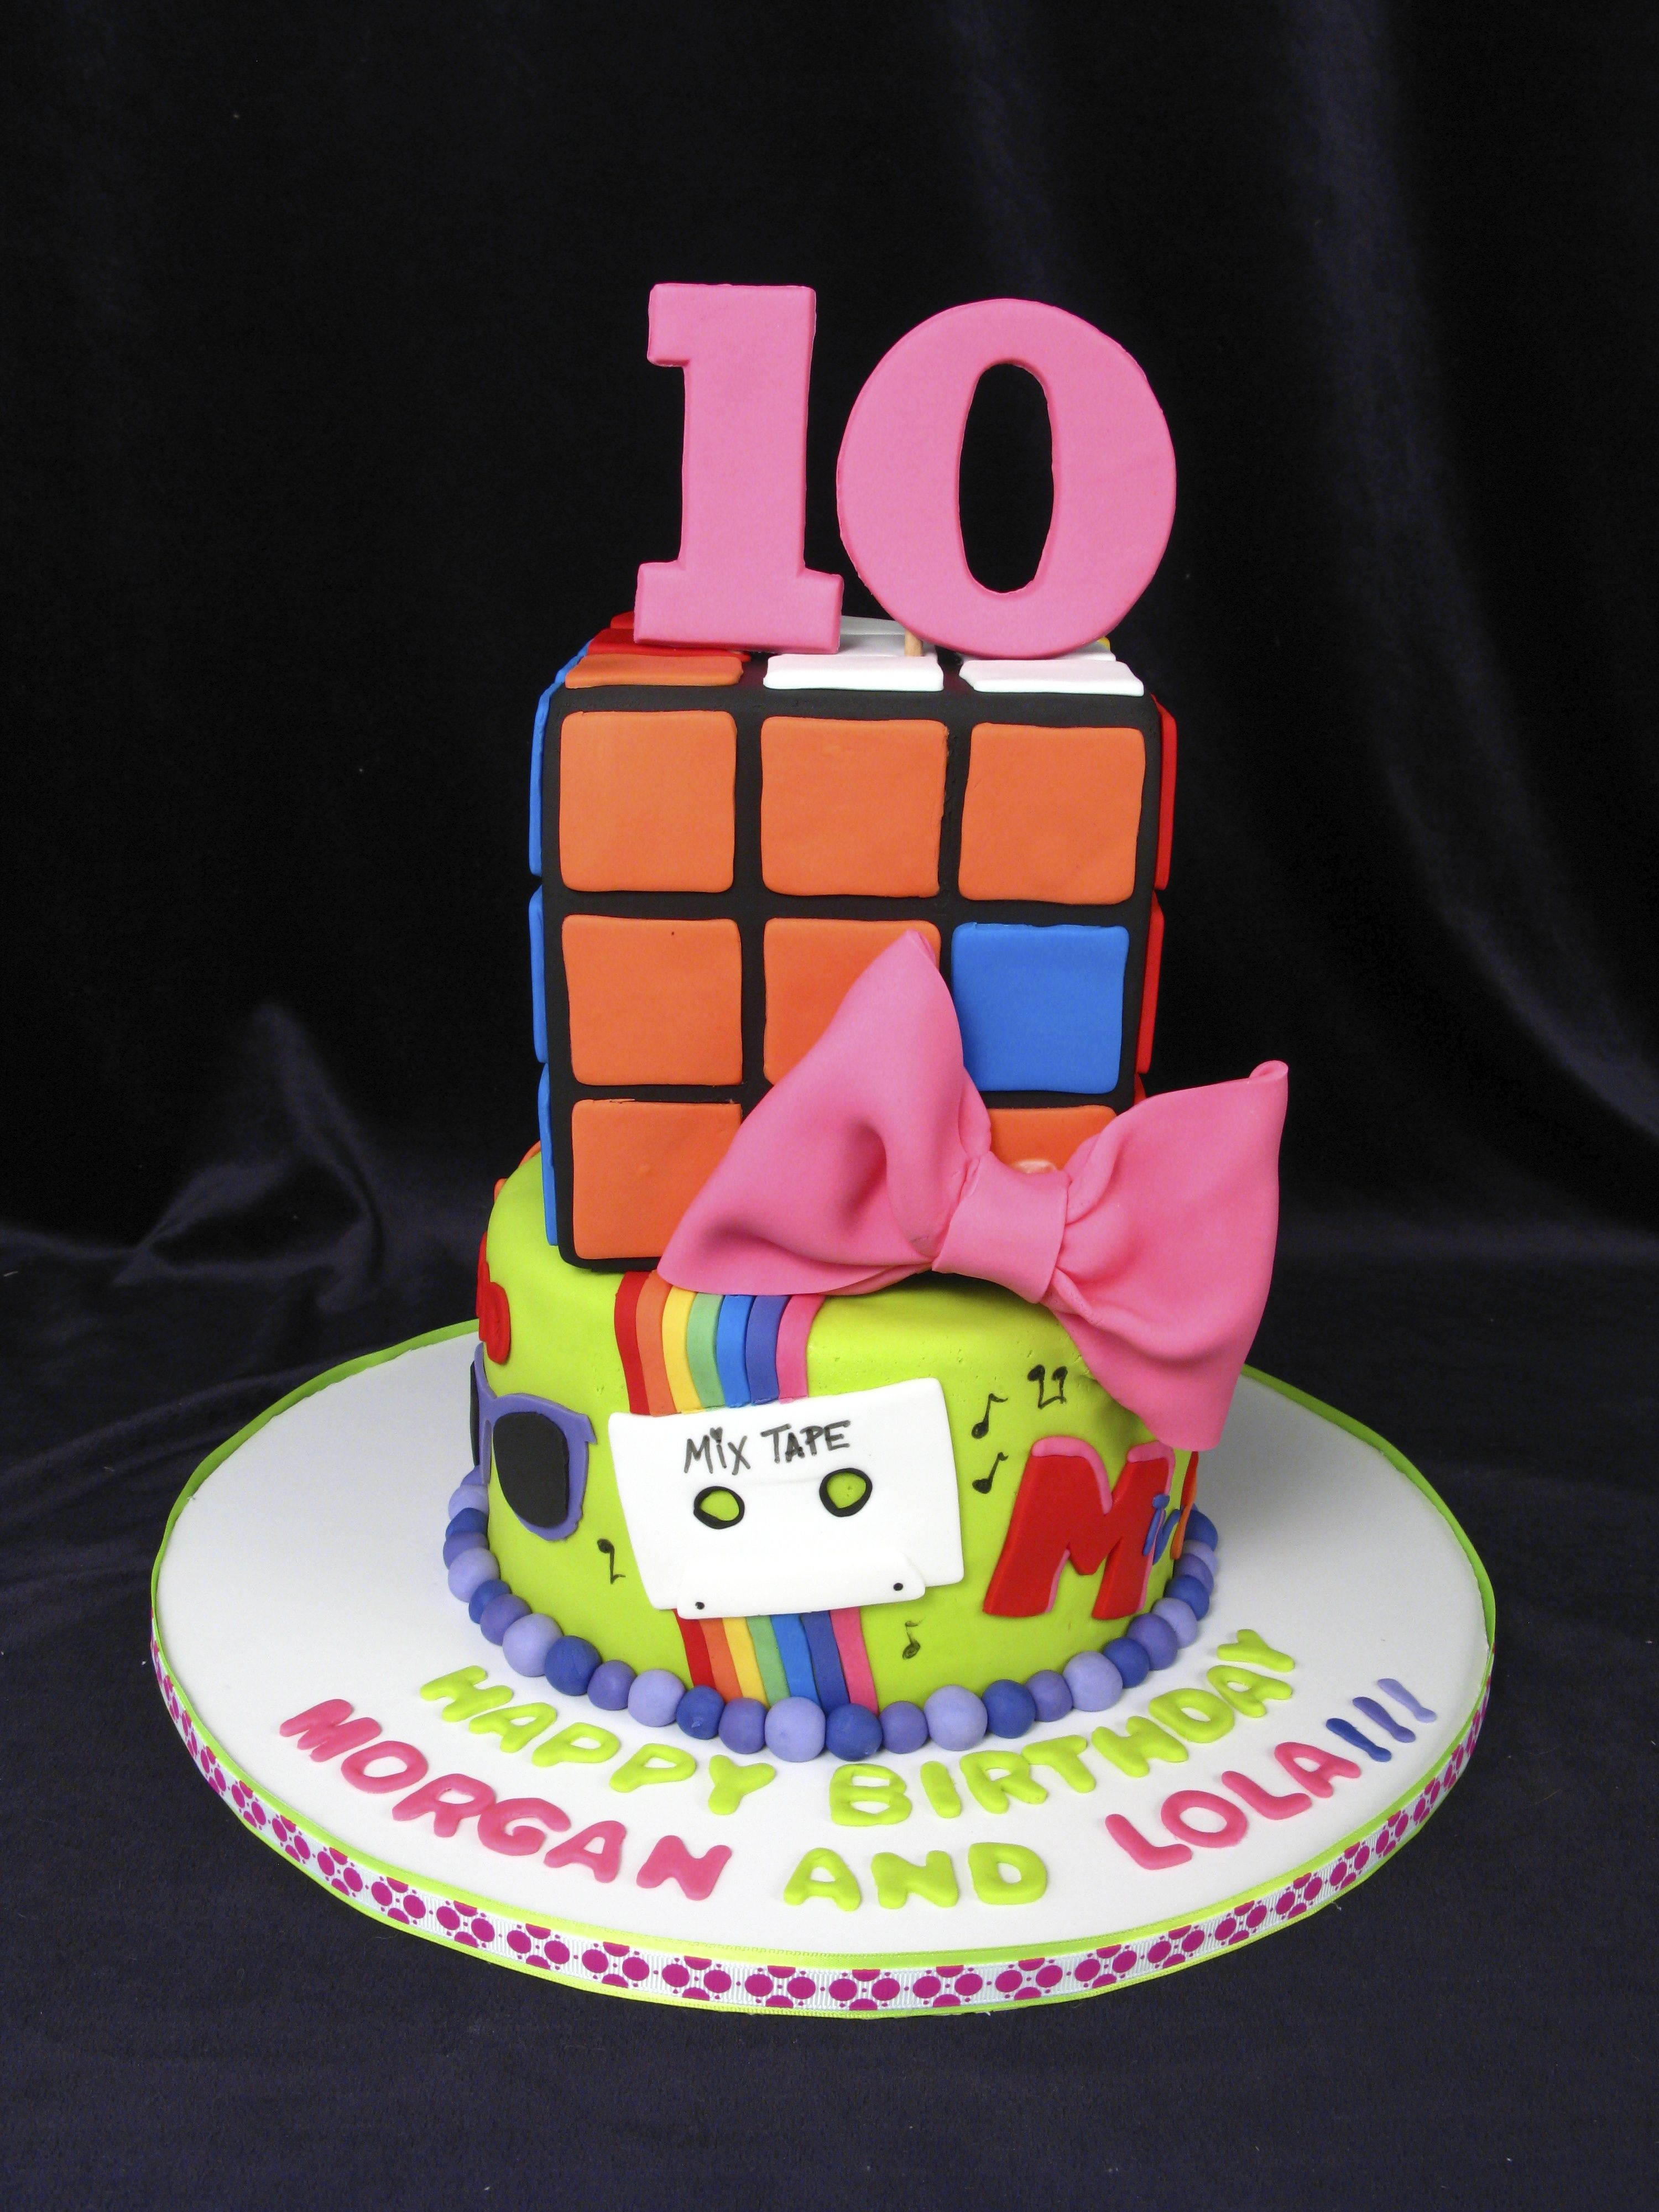 Fun 10th birthday cake Rubix cube bows mix tape rainbow fun